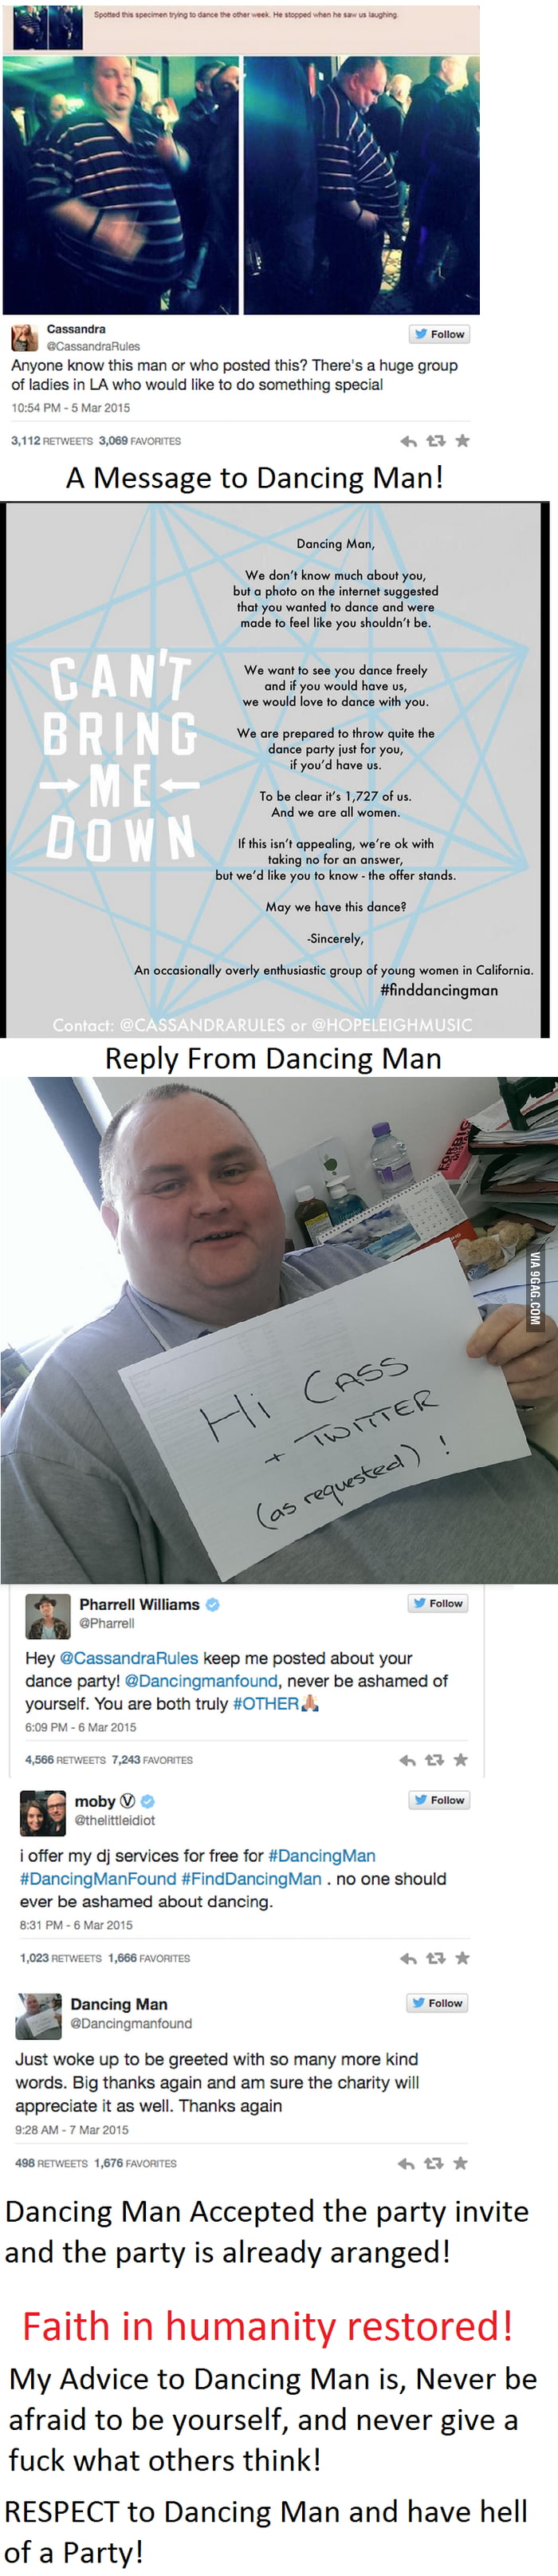 Dancing Man! It broke my heart when I saw this post first time!  But no I feel like justice has been Served!